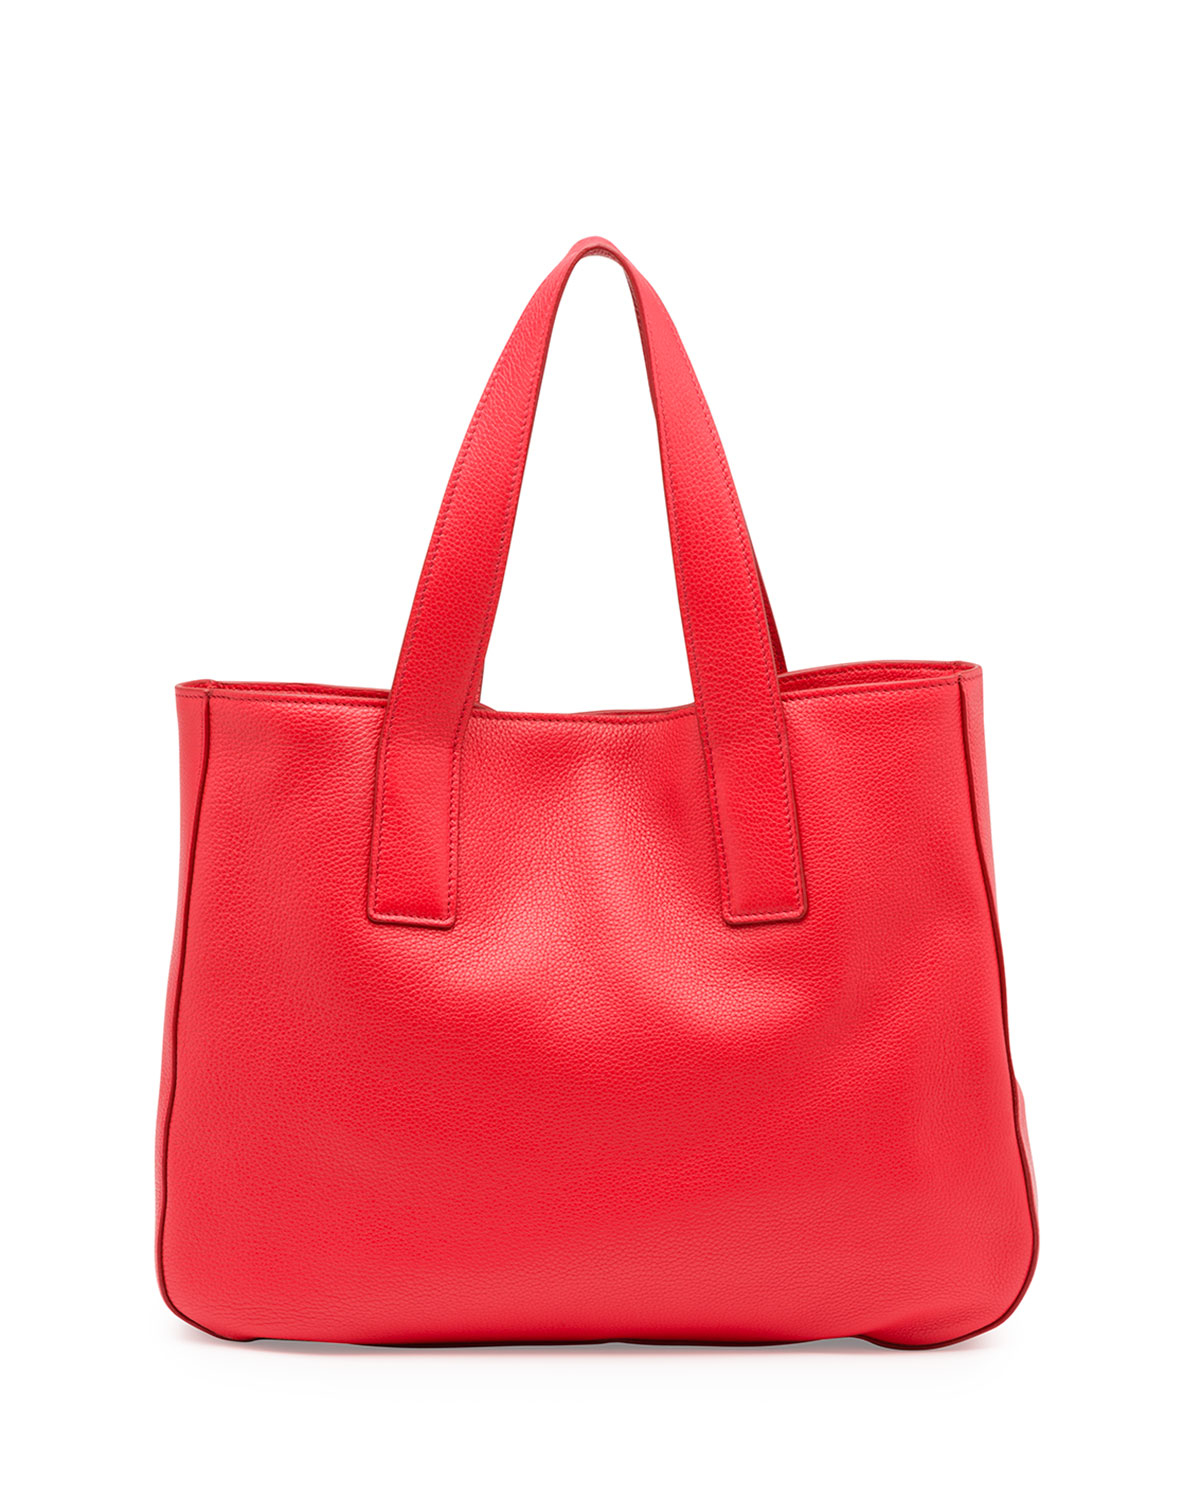 2ee55829cc prada baby bag sale - Prada Vitello Daino Leather Tote Bag in Red (LACCA)